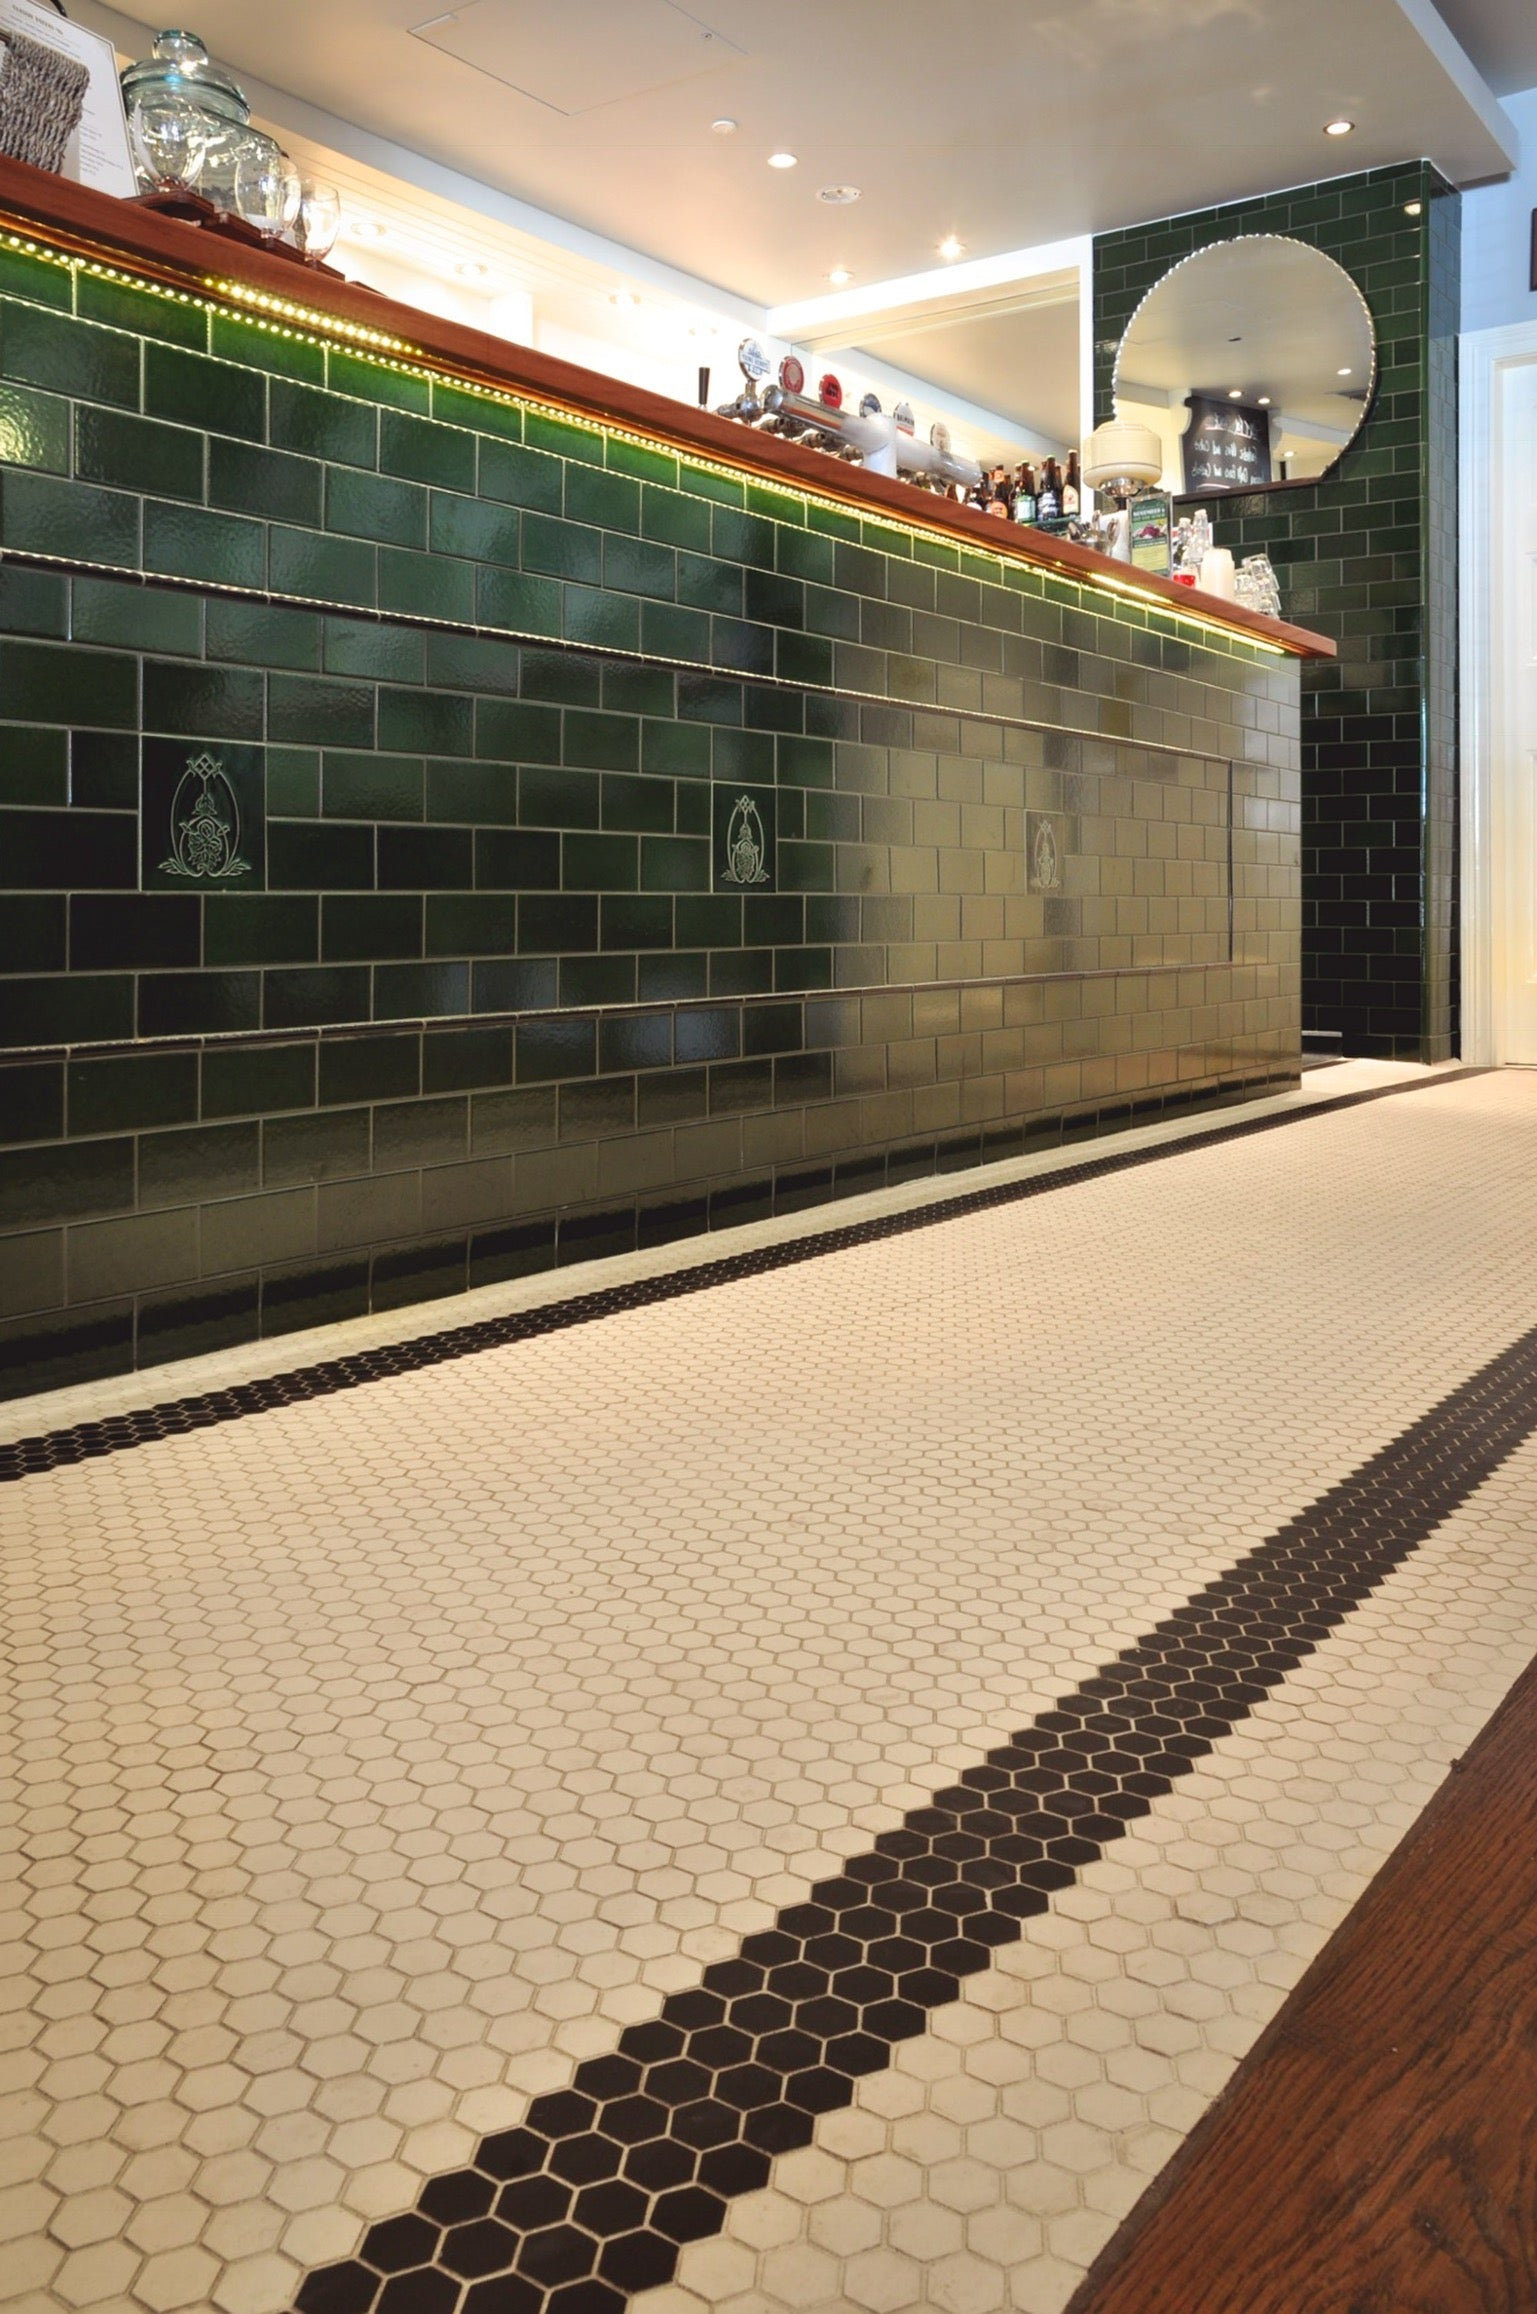 Green subway tiles bar front - The Annandale